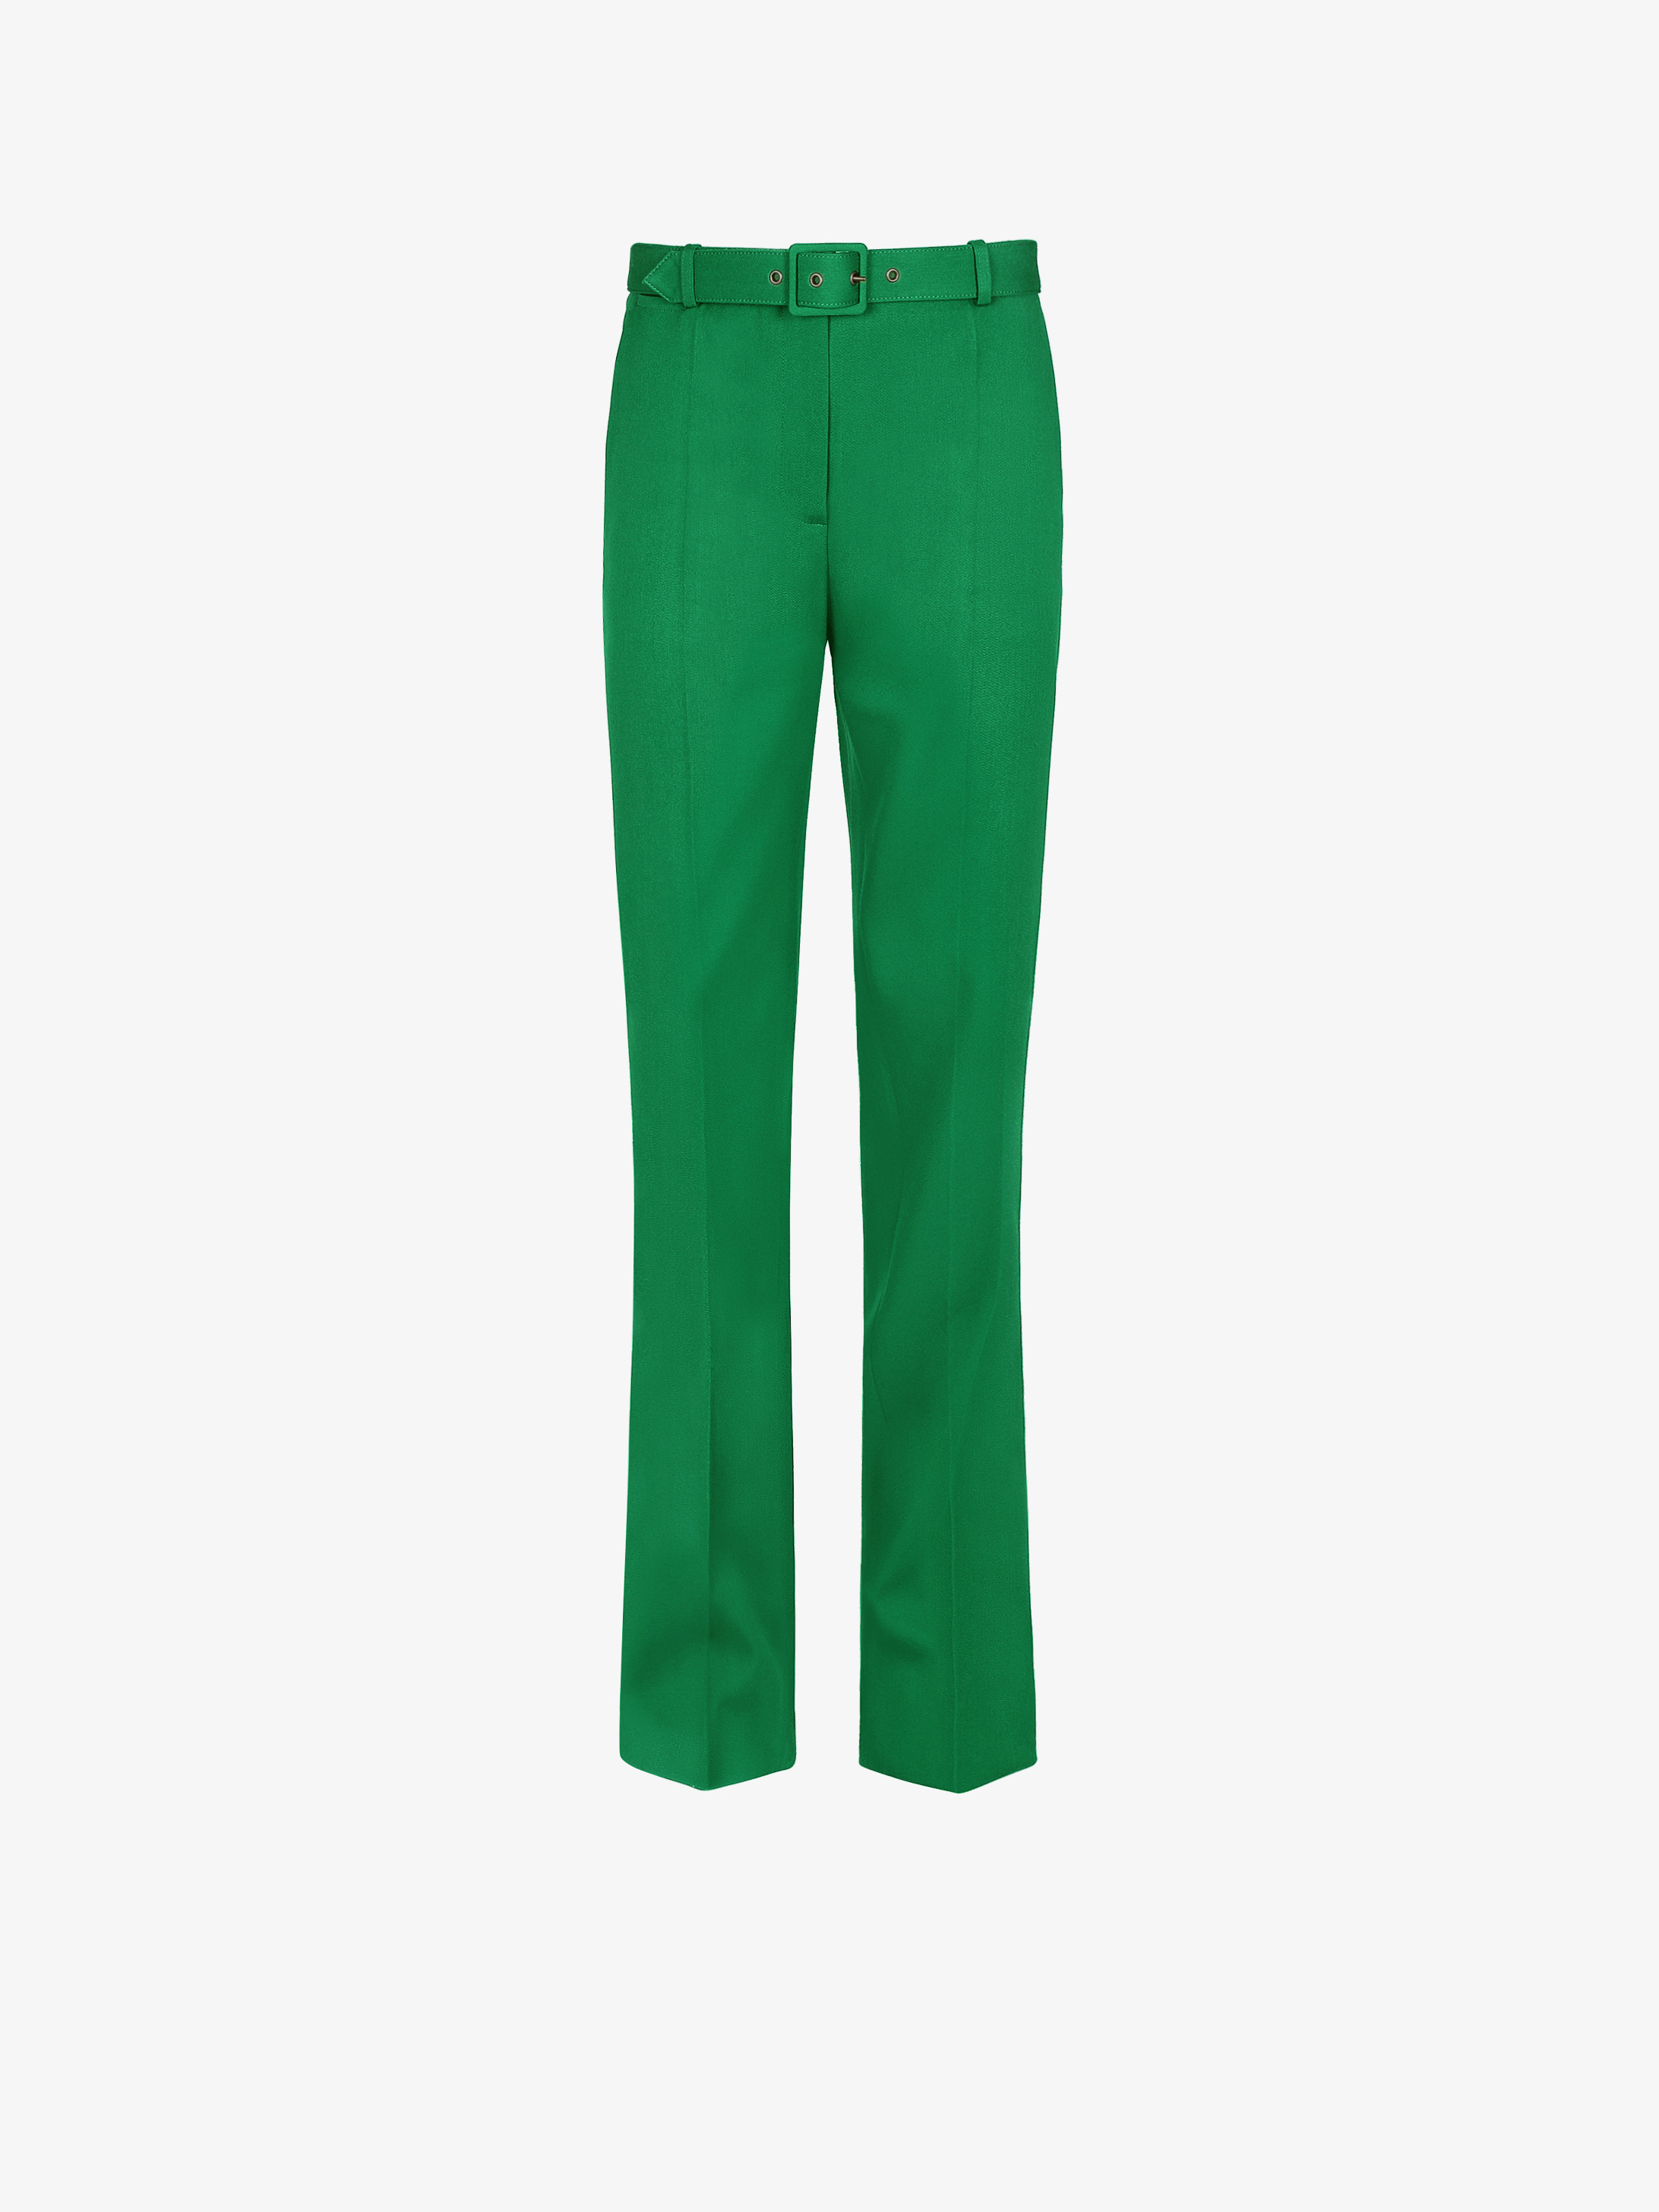 Pants in wool crepe with belt